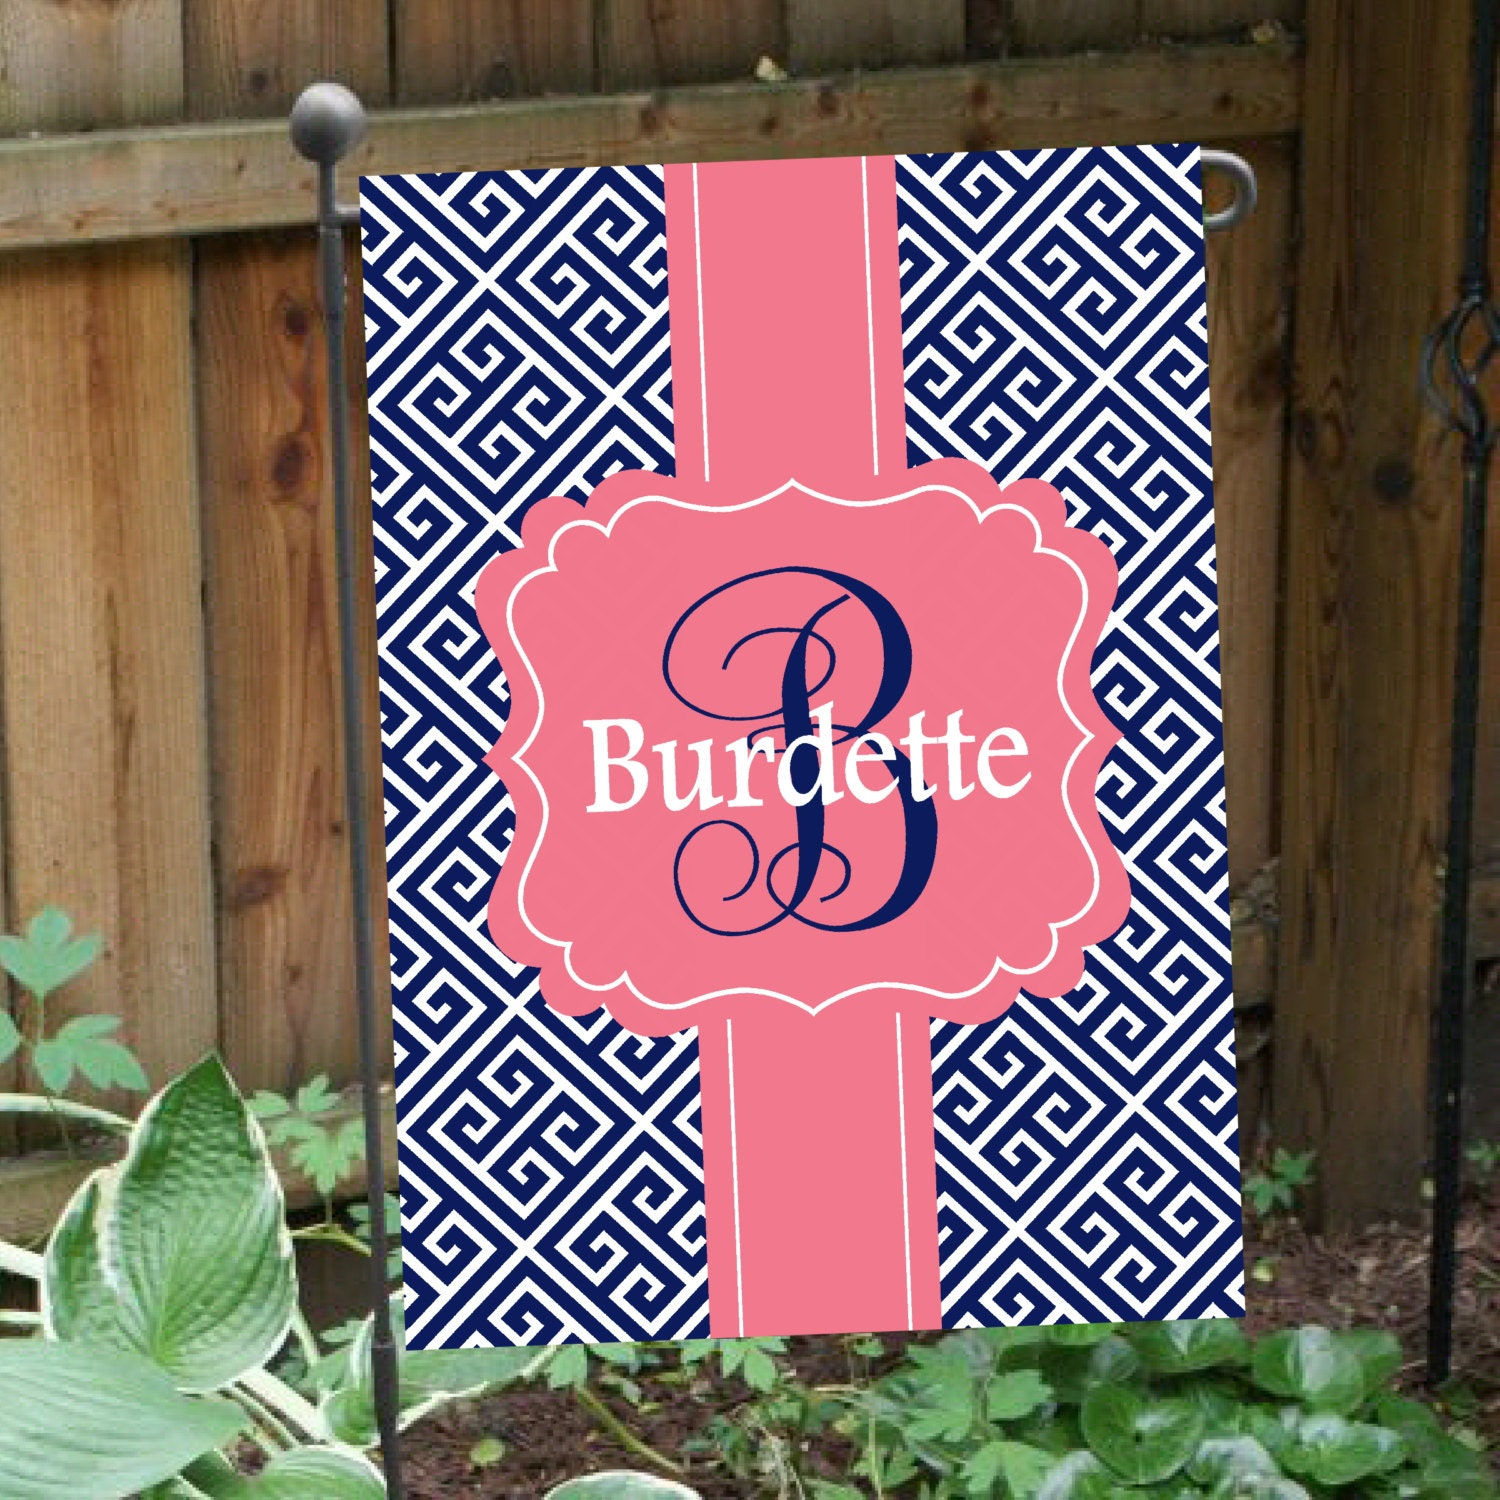 Personalized Flag DOUBLE-SIDED, Garden Flag, House Flag, Key